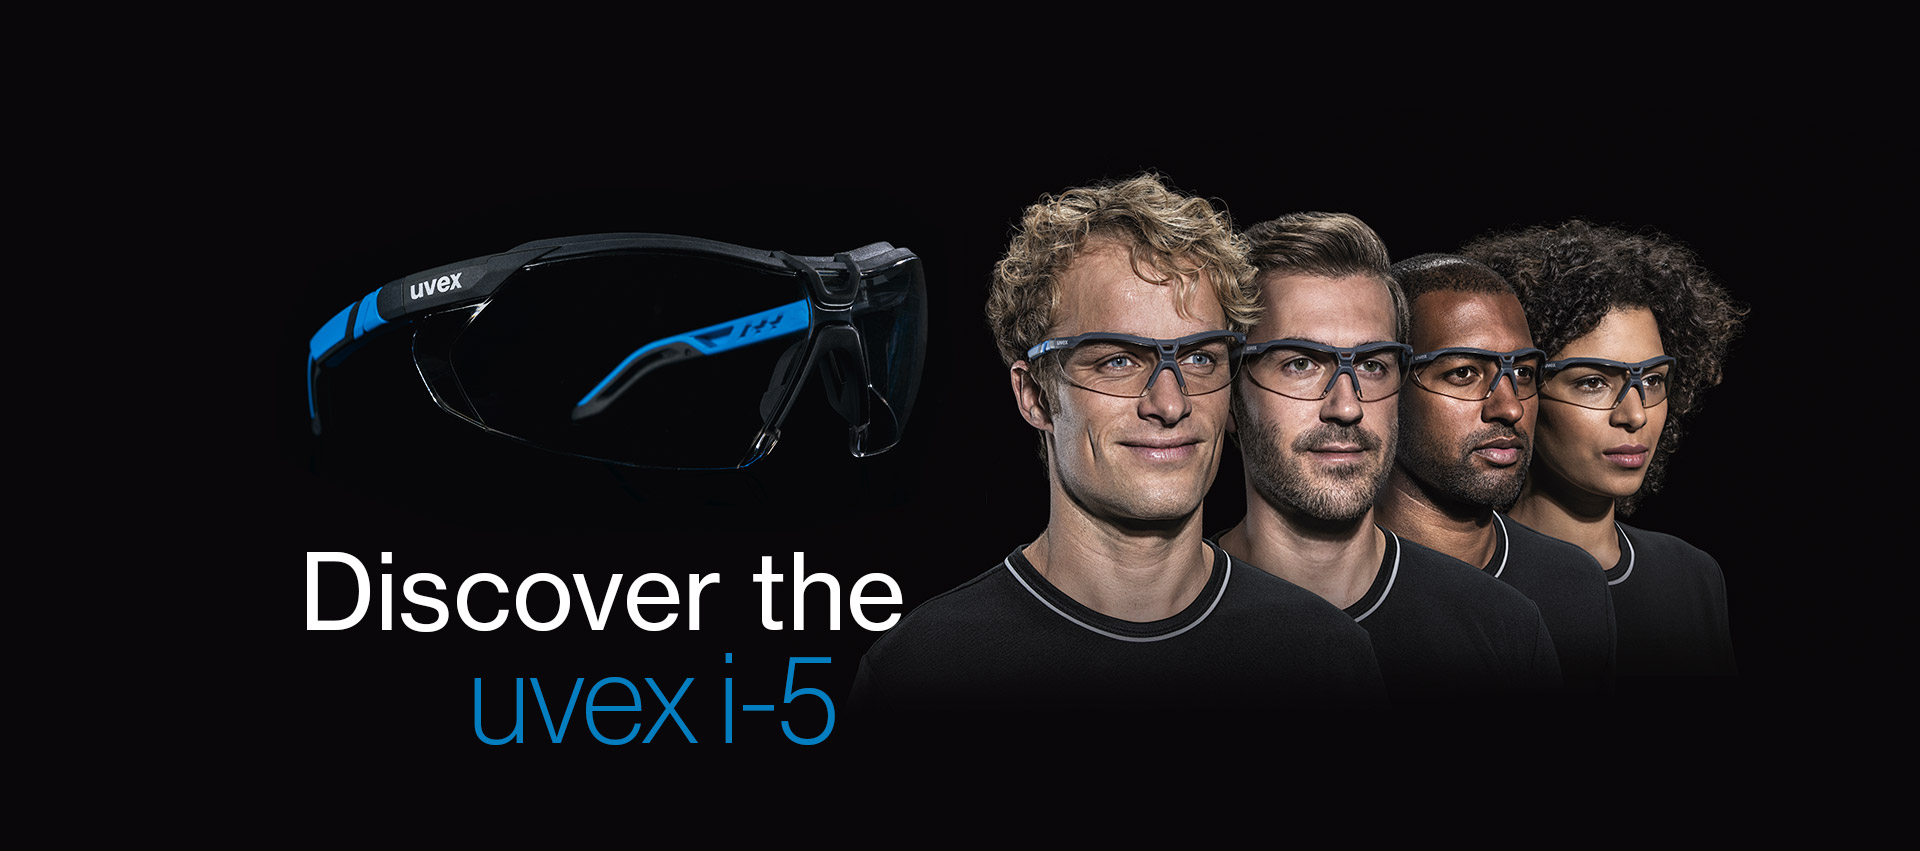 uvex i-5 – Discover more technology, performance and style